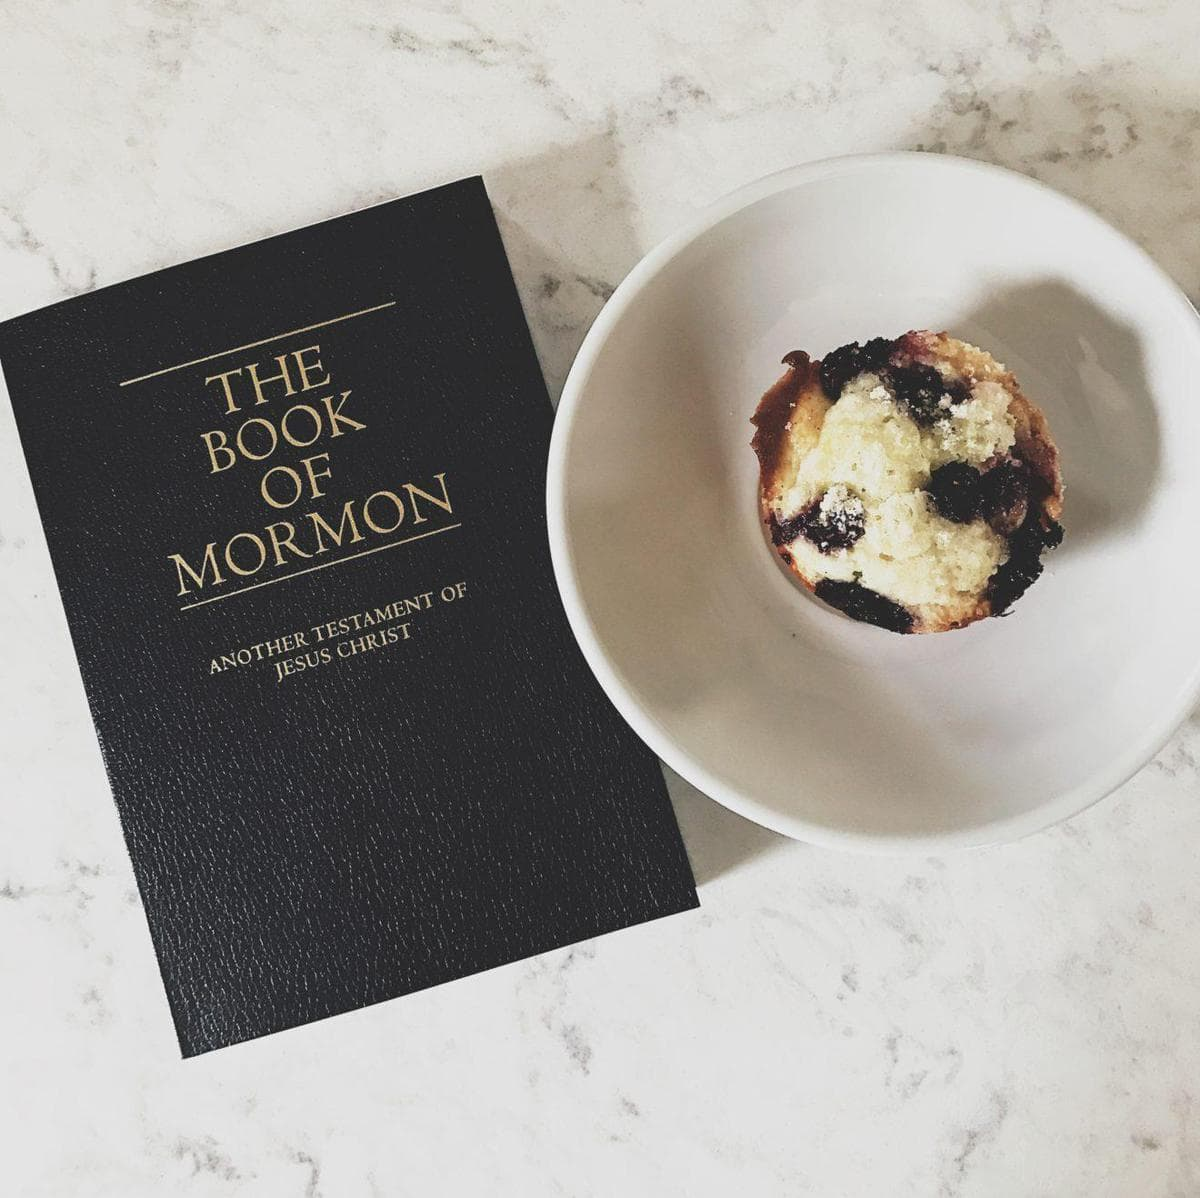 book of mormon and a muffin